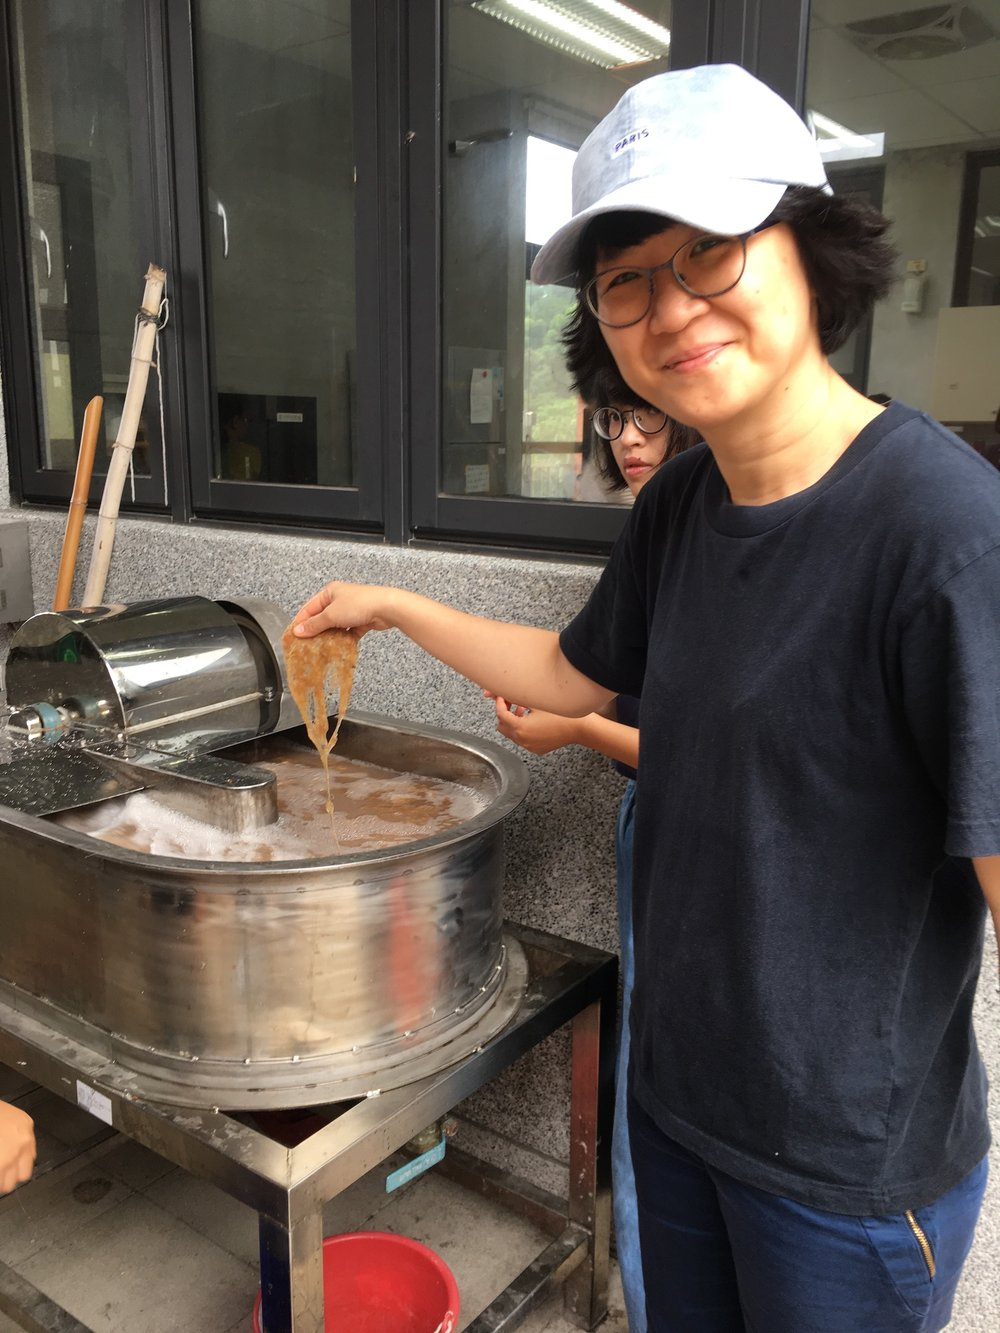 Assistant Professor from the Graduate Institute of Applied Arts, Pei-Shan Wu checks the progress of the beaten banana fibre in the  beater.